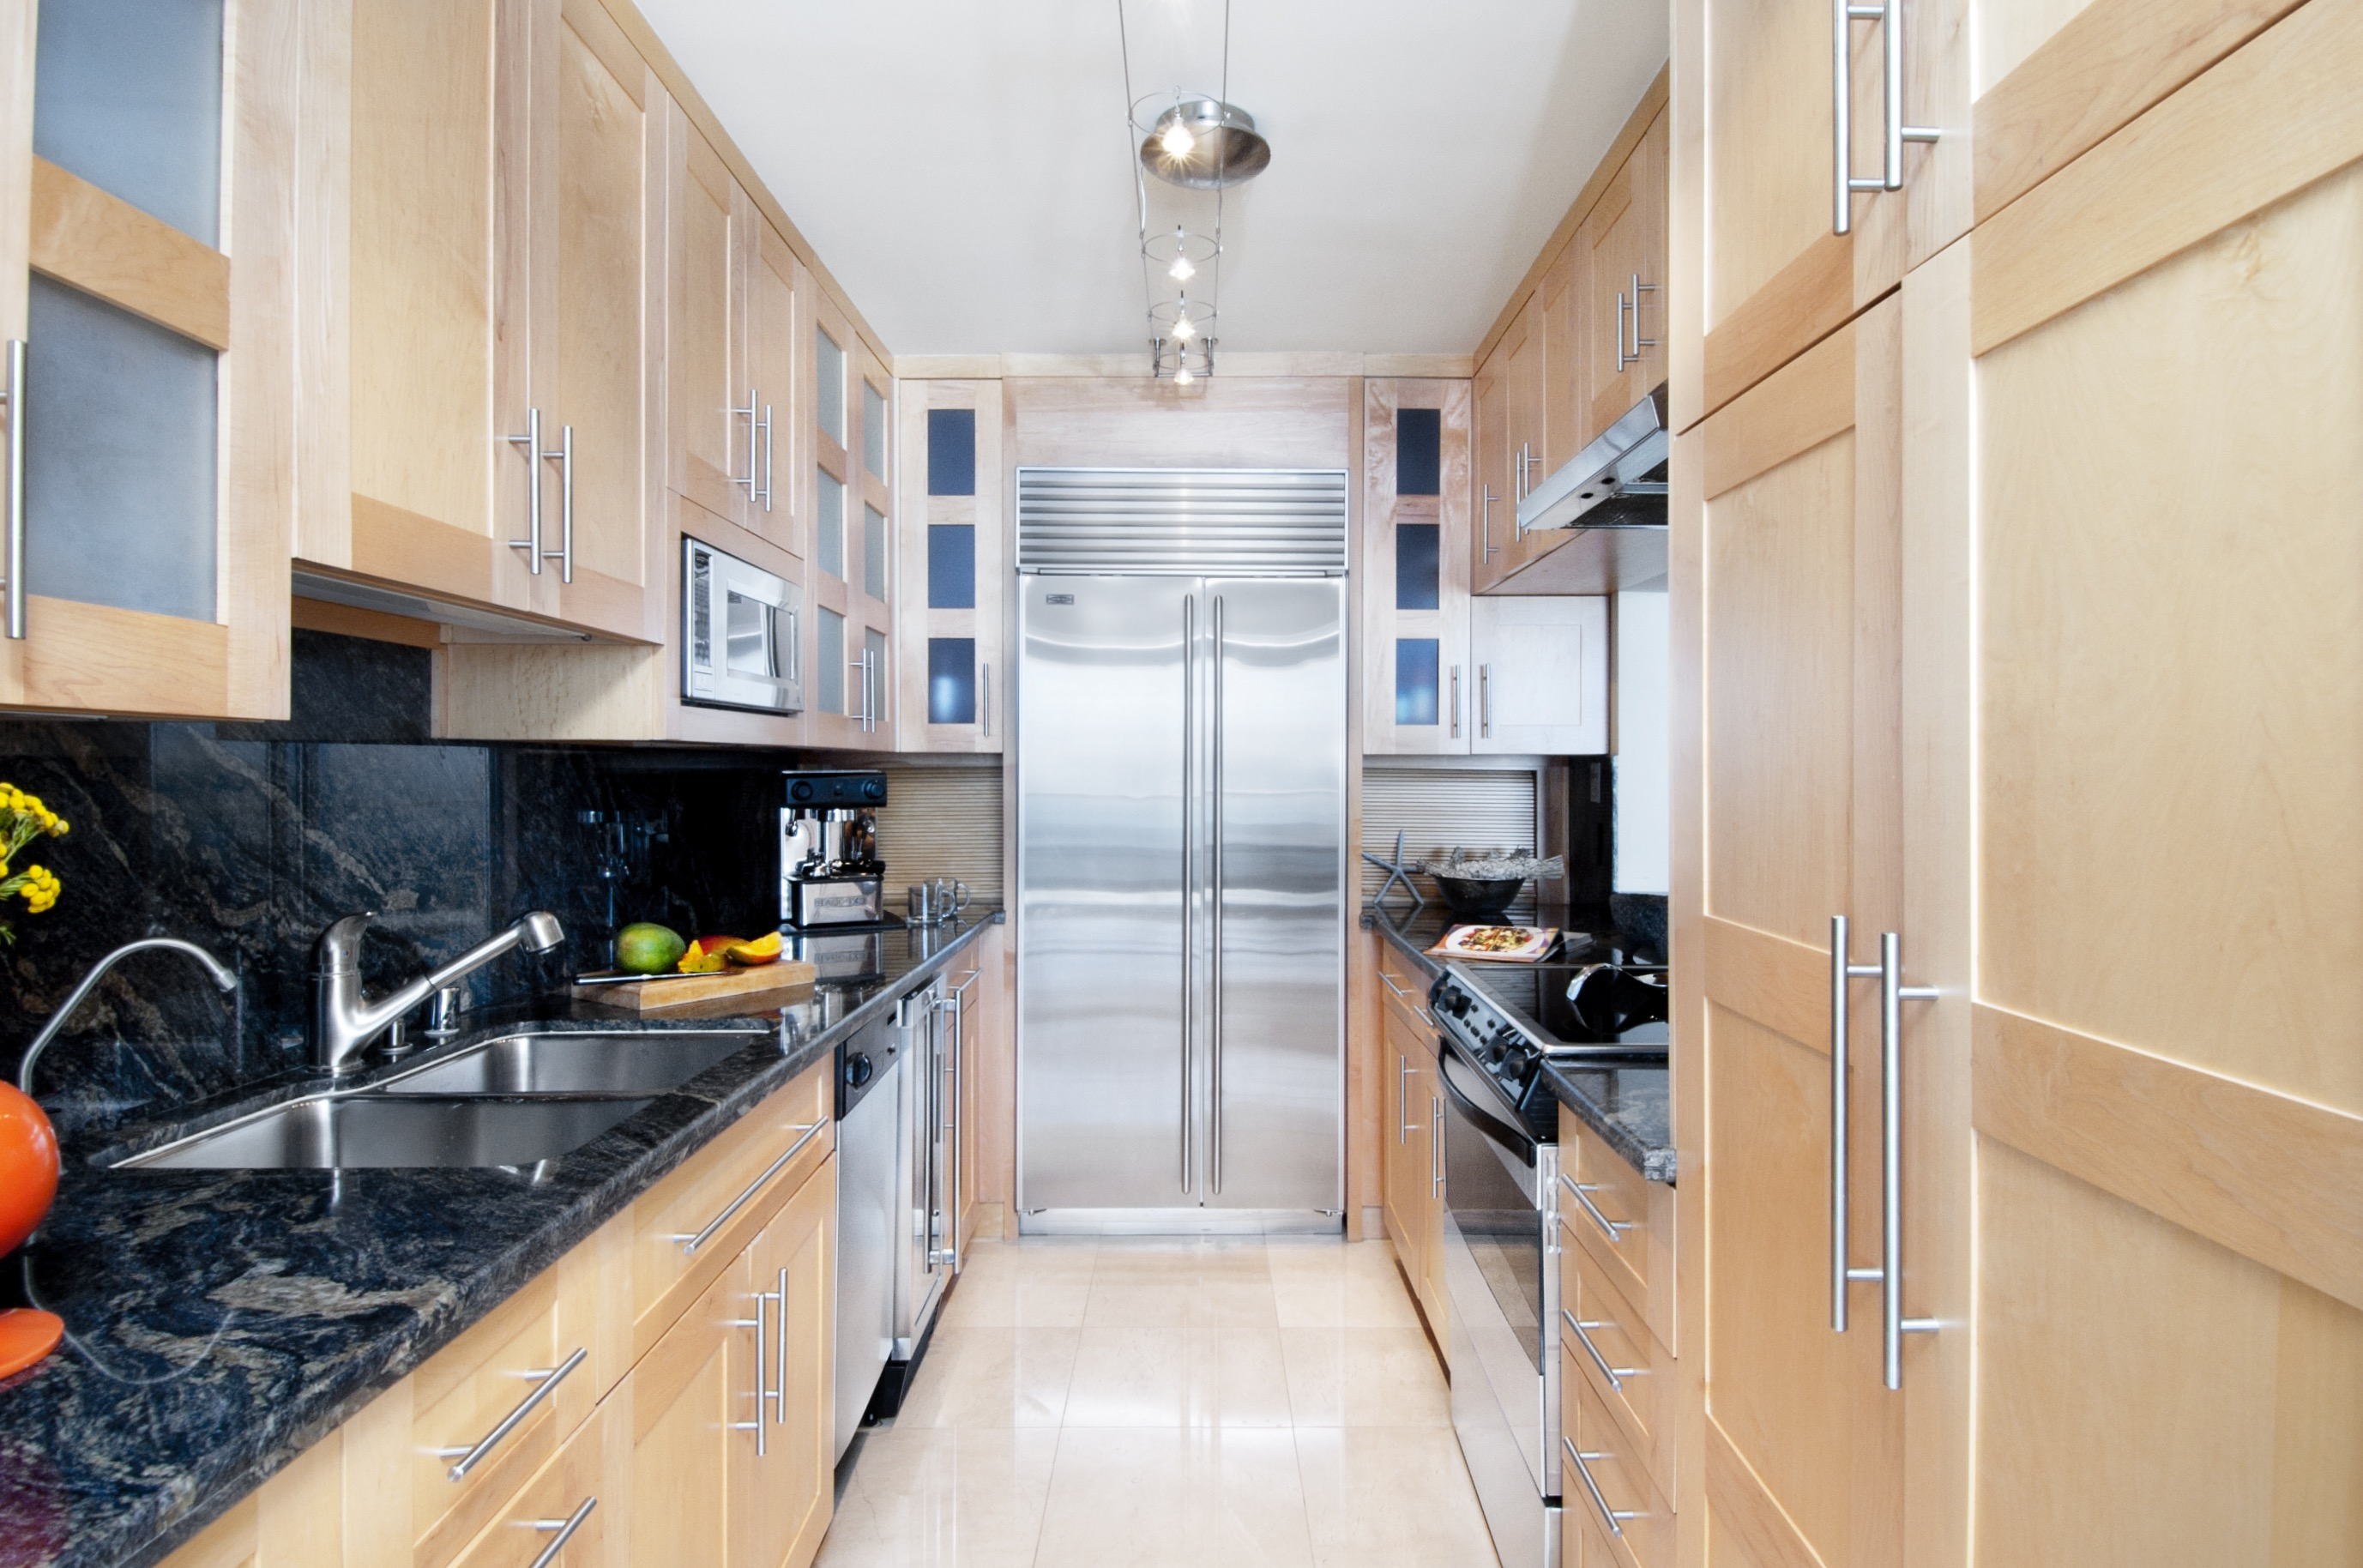 Modern Galley Apartment Kitchen With Natural Wood Cabinetry (View 21 of 30)